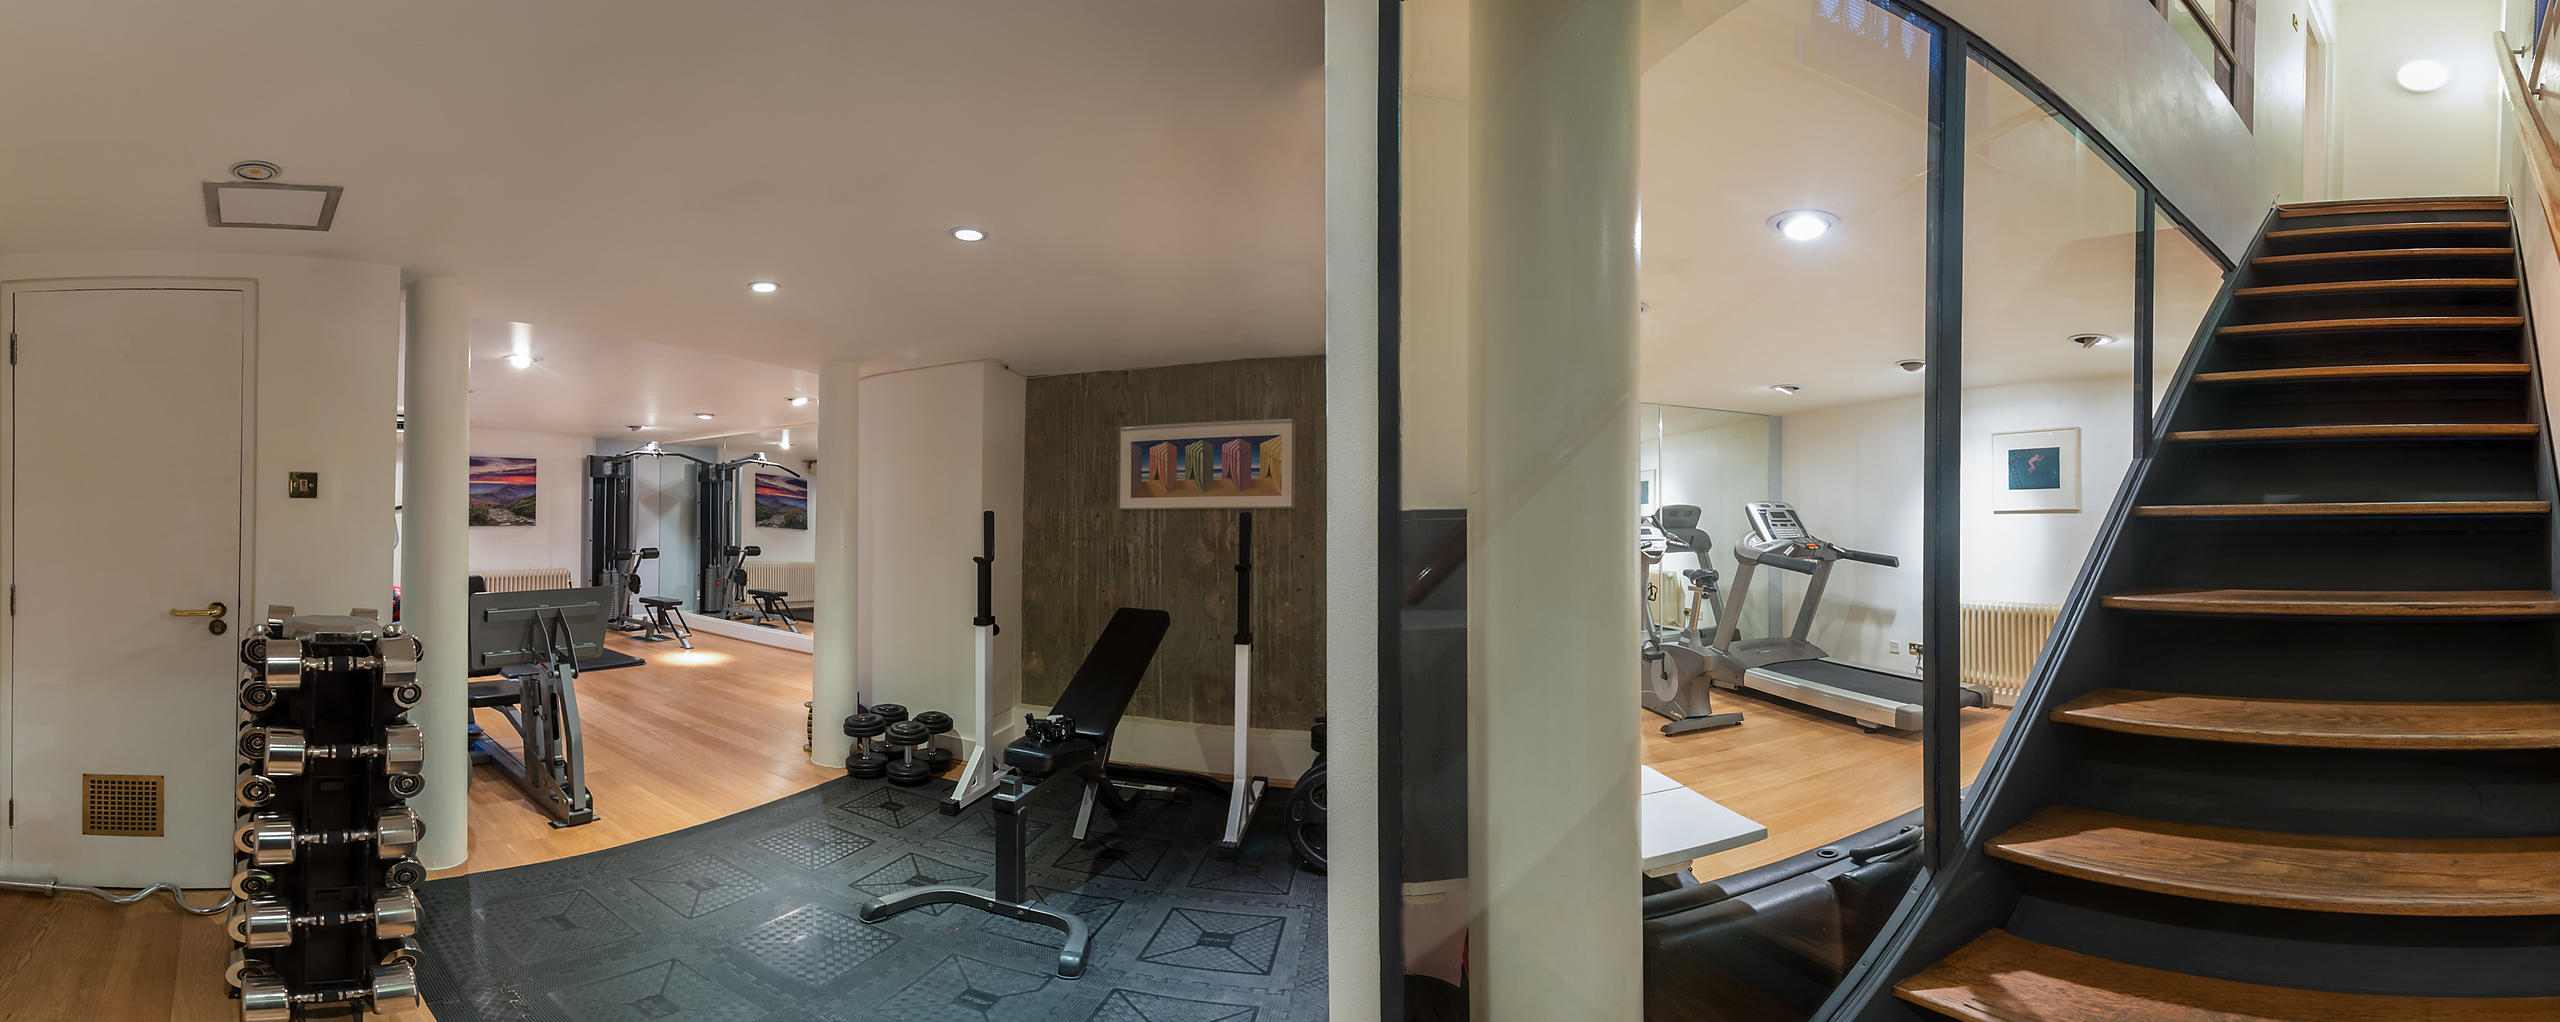 Mayfair Private Gym Interior